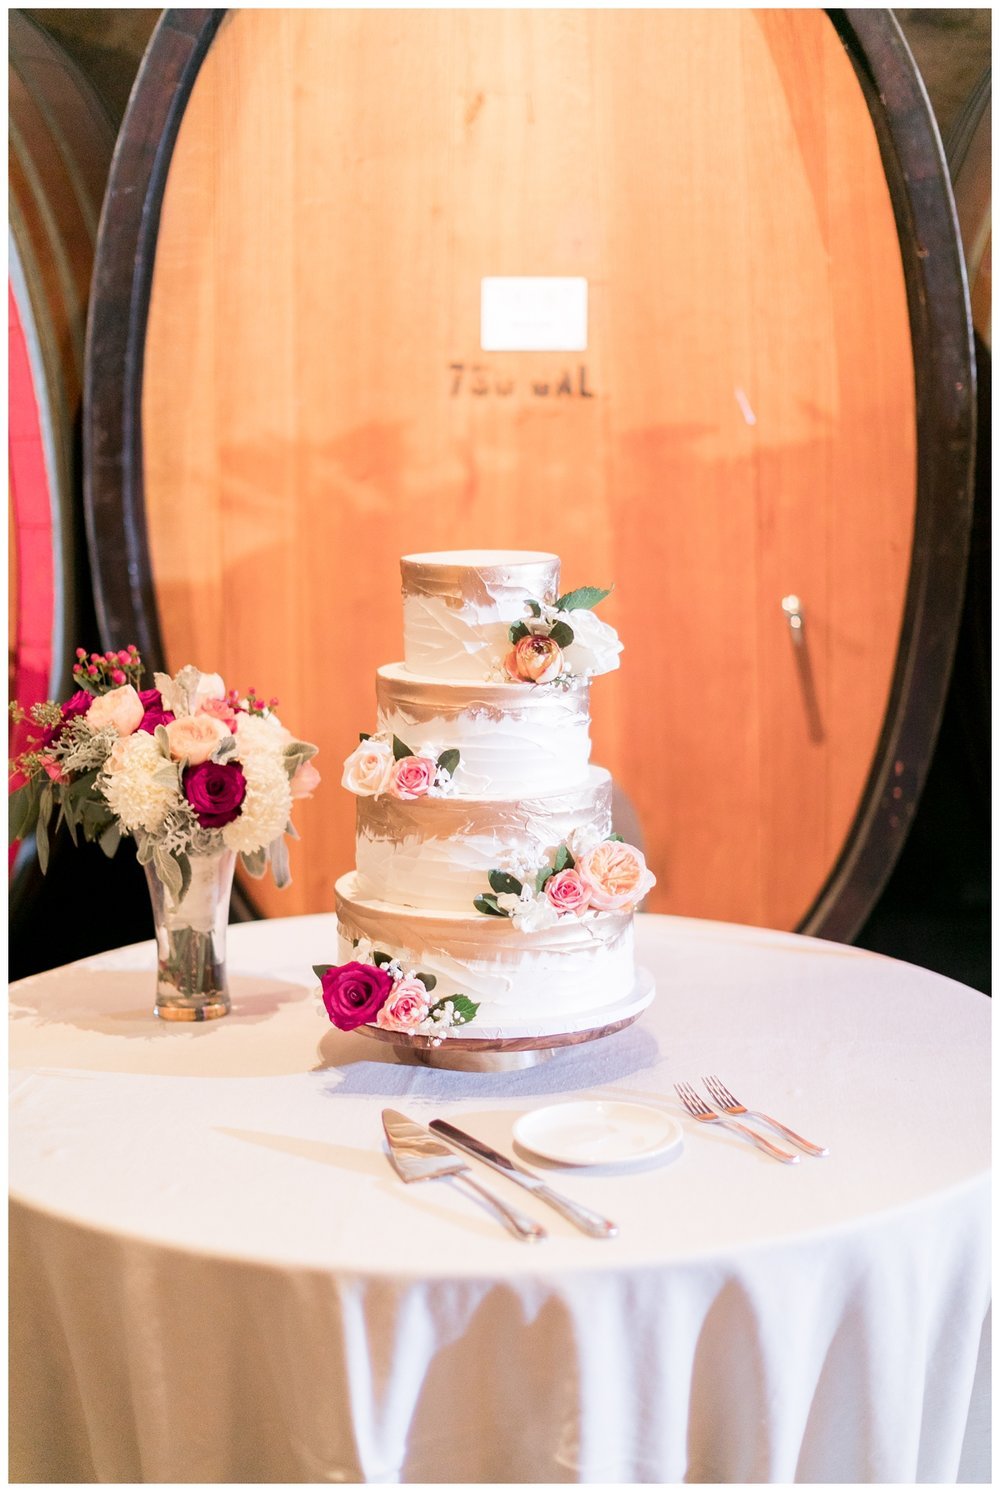 delicous wedding cake taken by a V. Sattui Winery wedding photographer